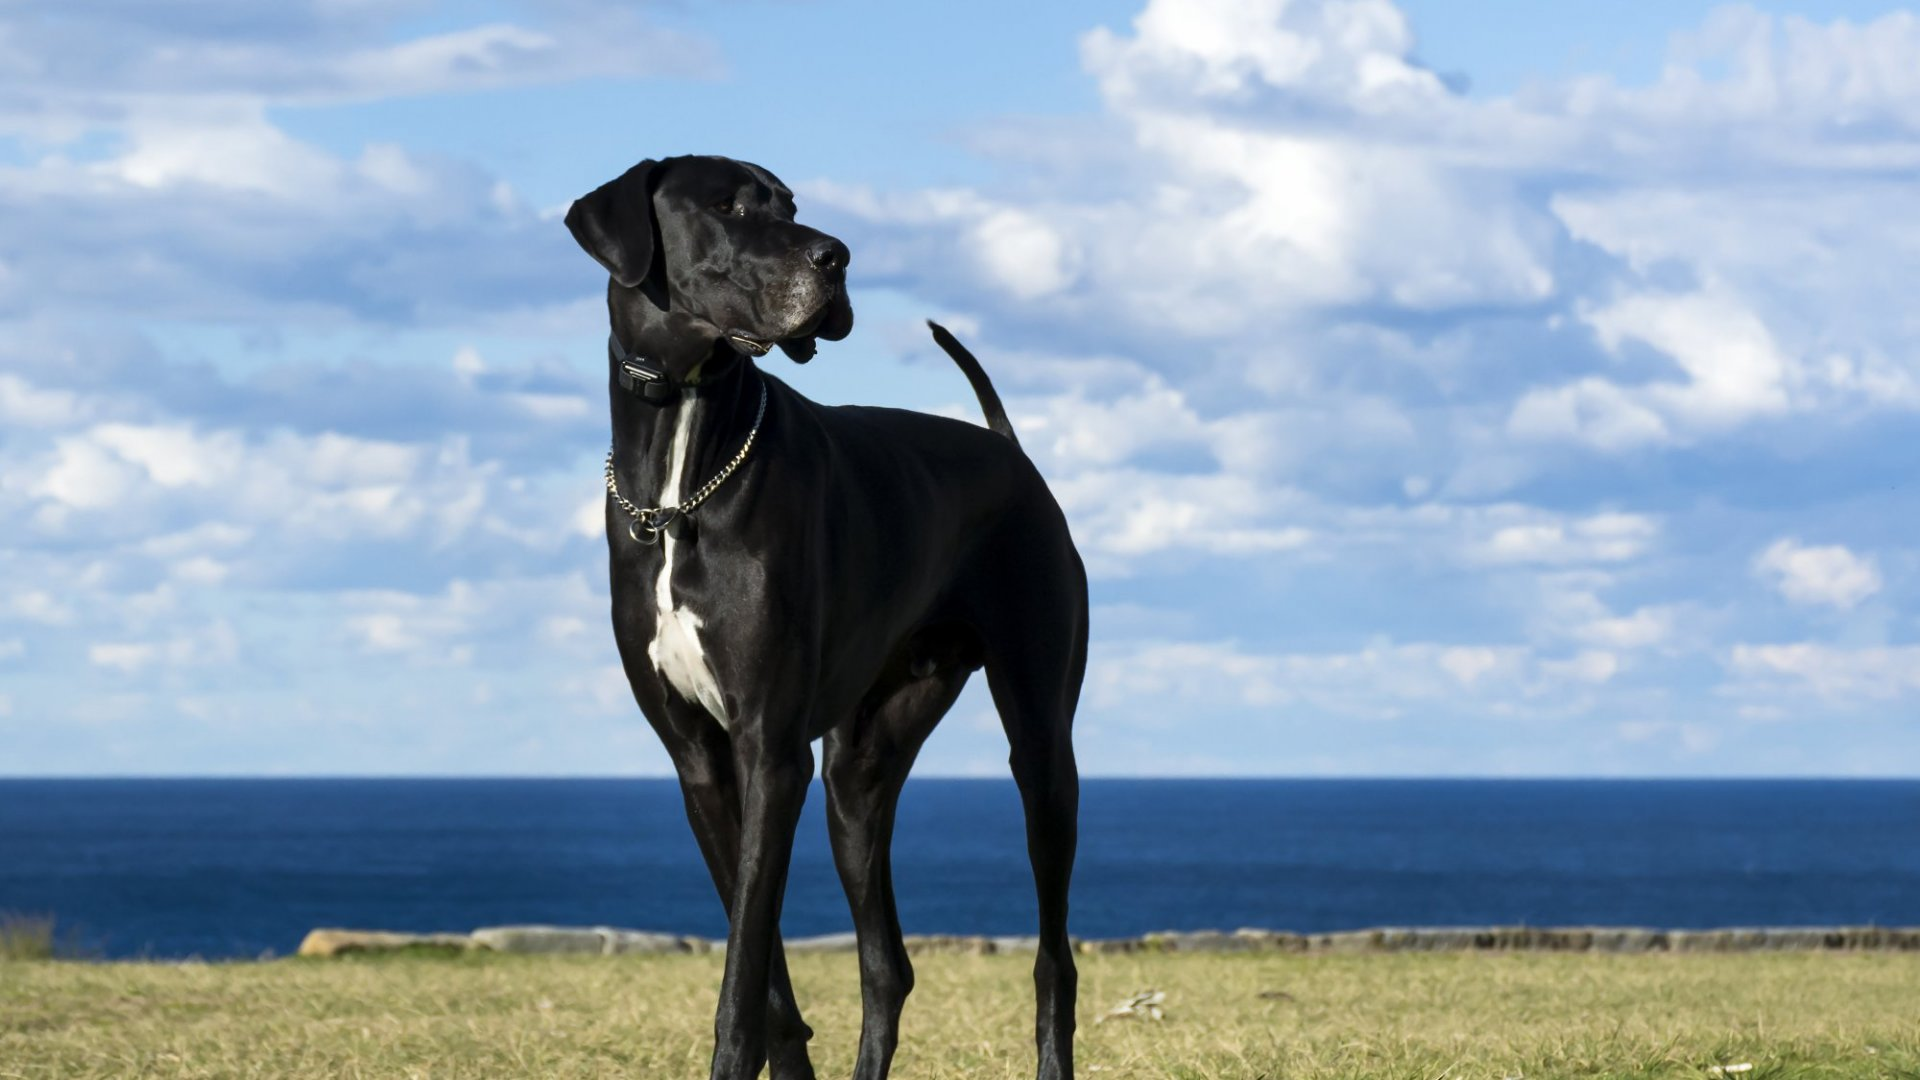 A Great Business Built on the Memory of a Beloved Great Dane